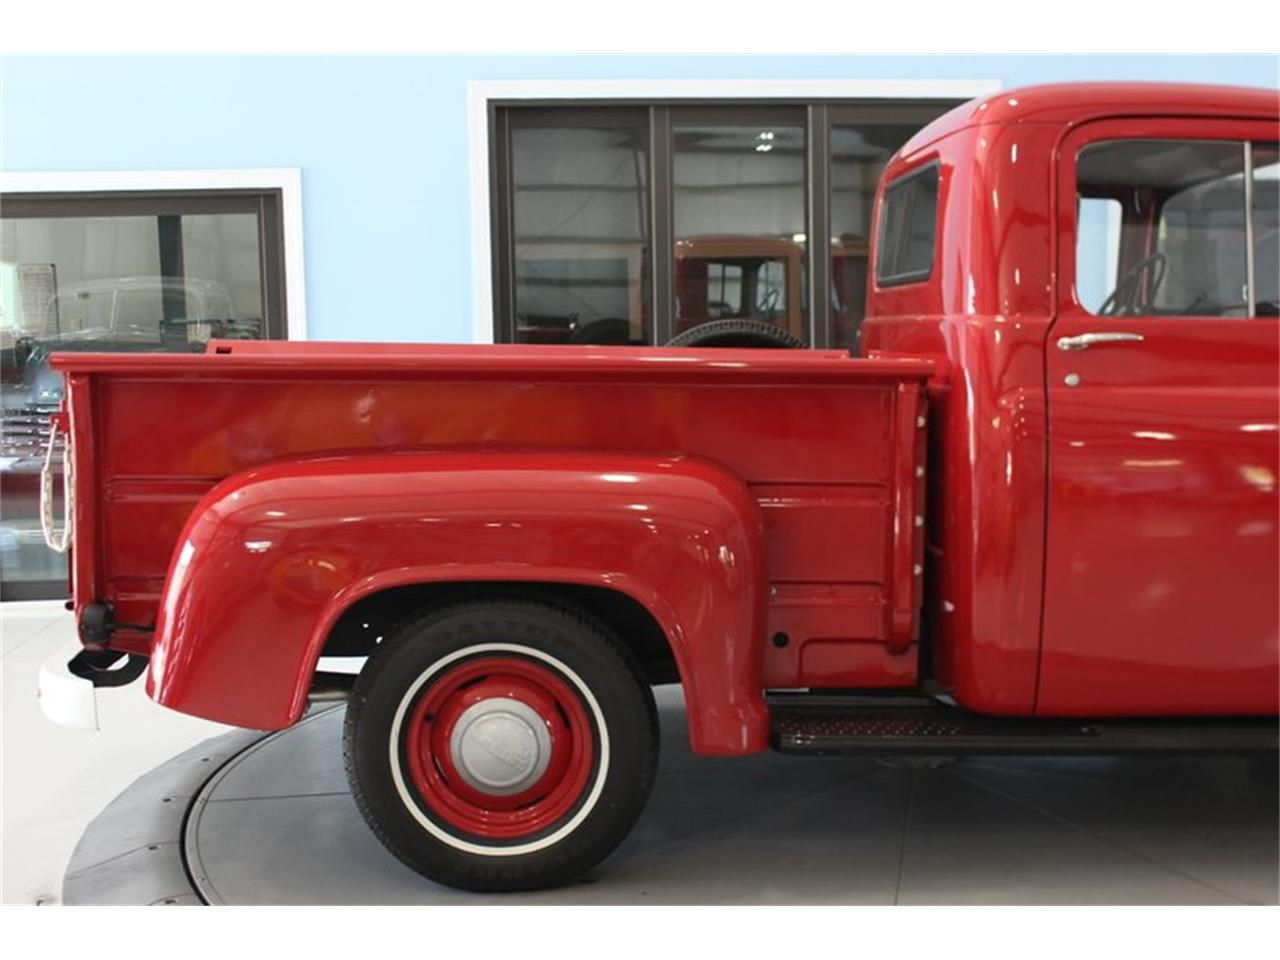 1955 Dodge Truck For Sale Classiccars Com Cc 1209865